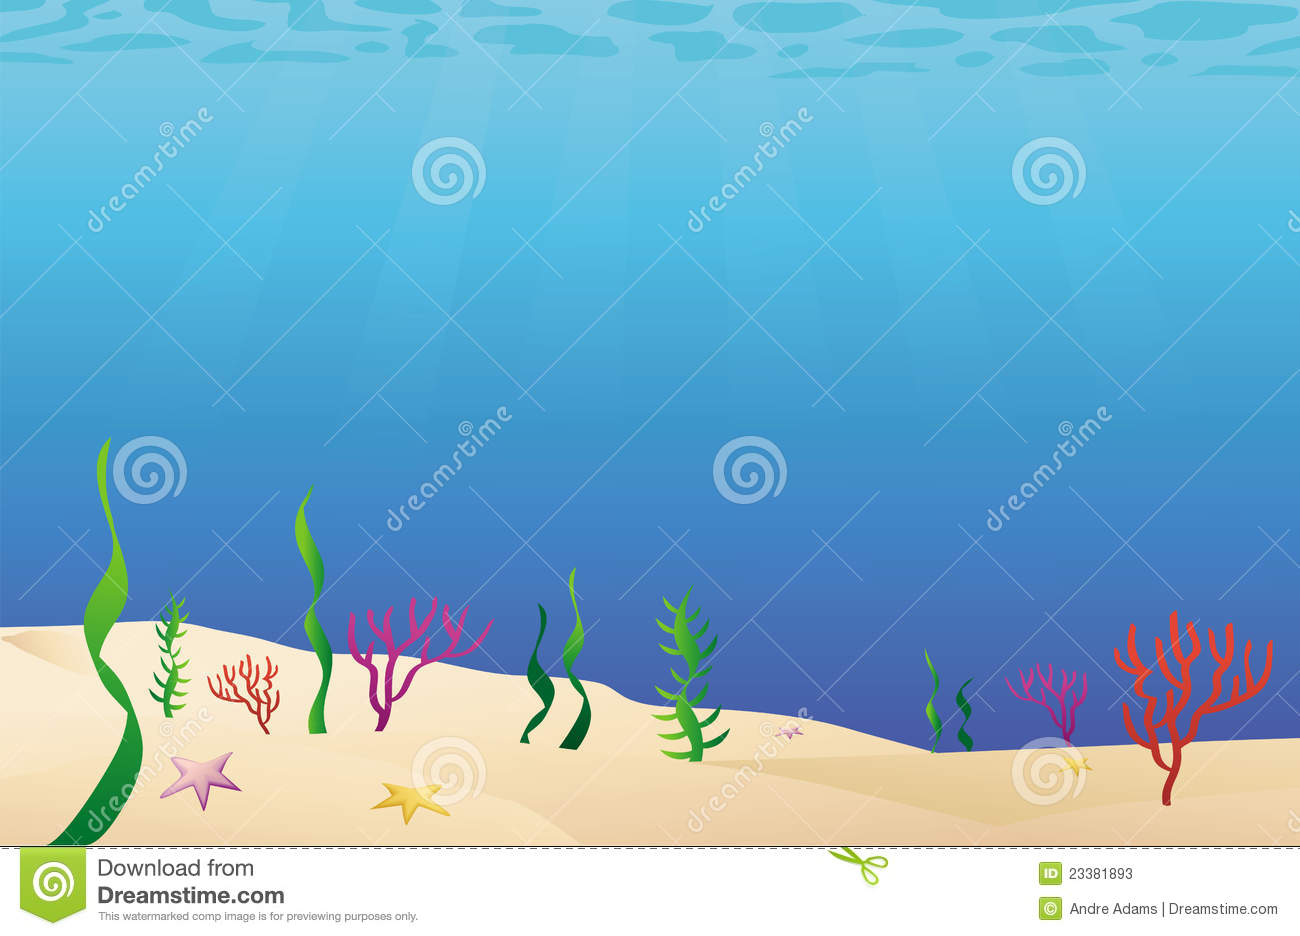 Ocean floor sea bed stock vector. Illustration of cartoon ...